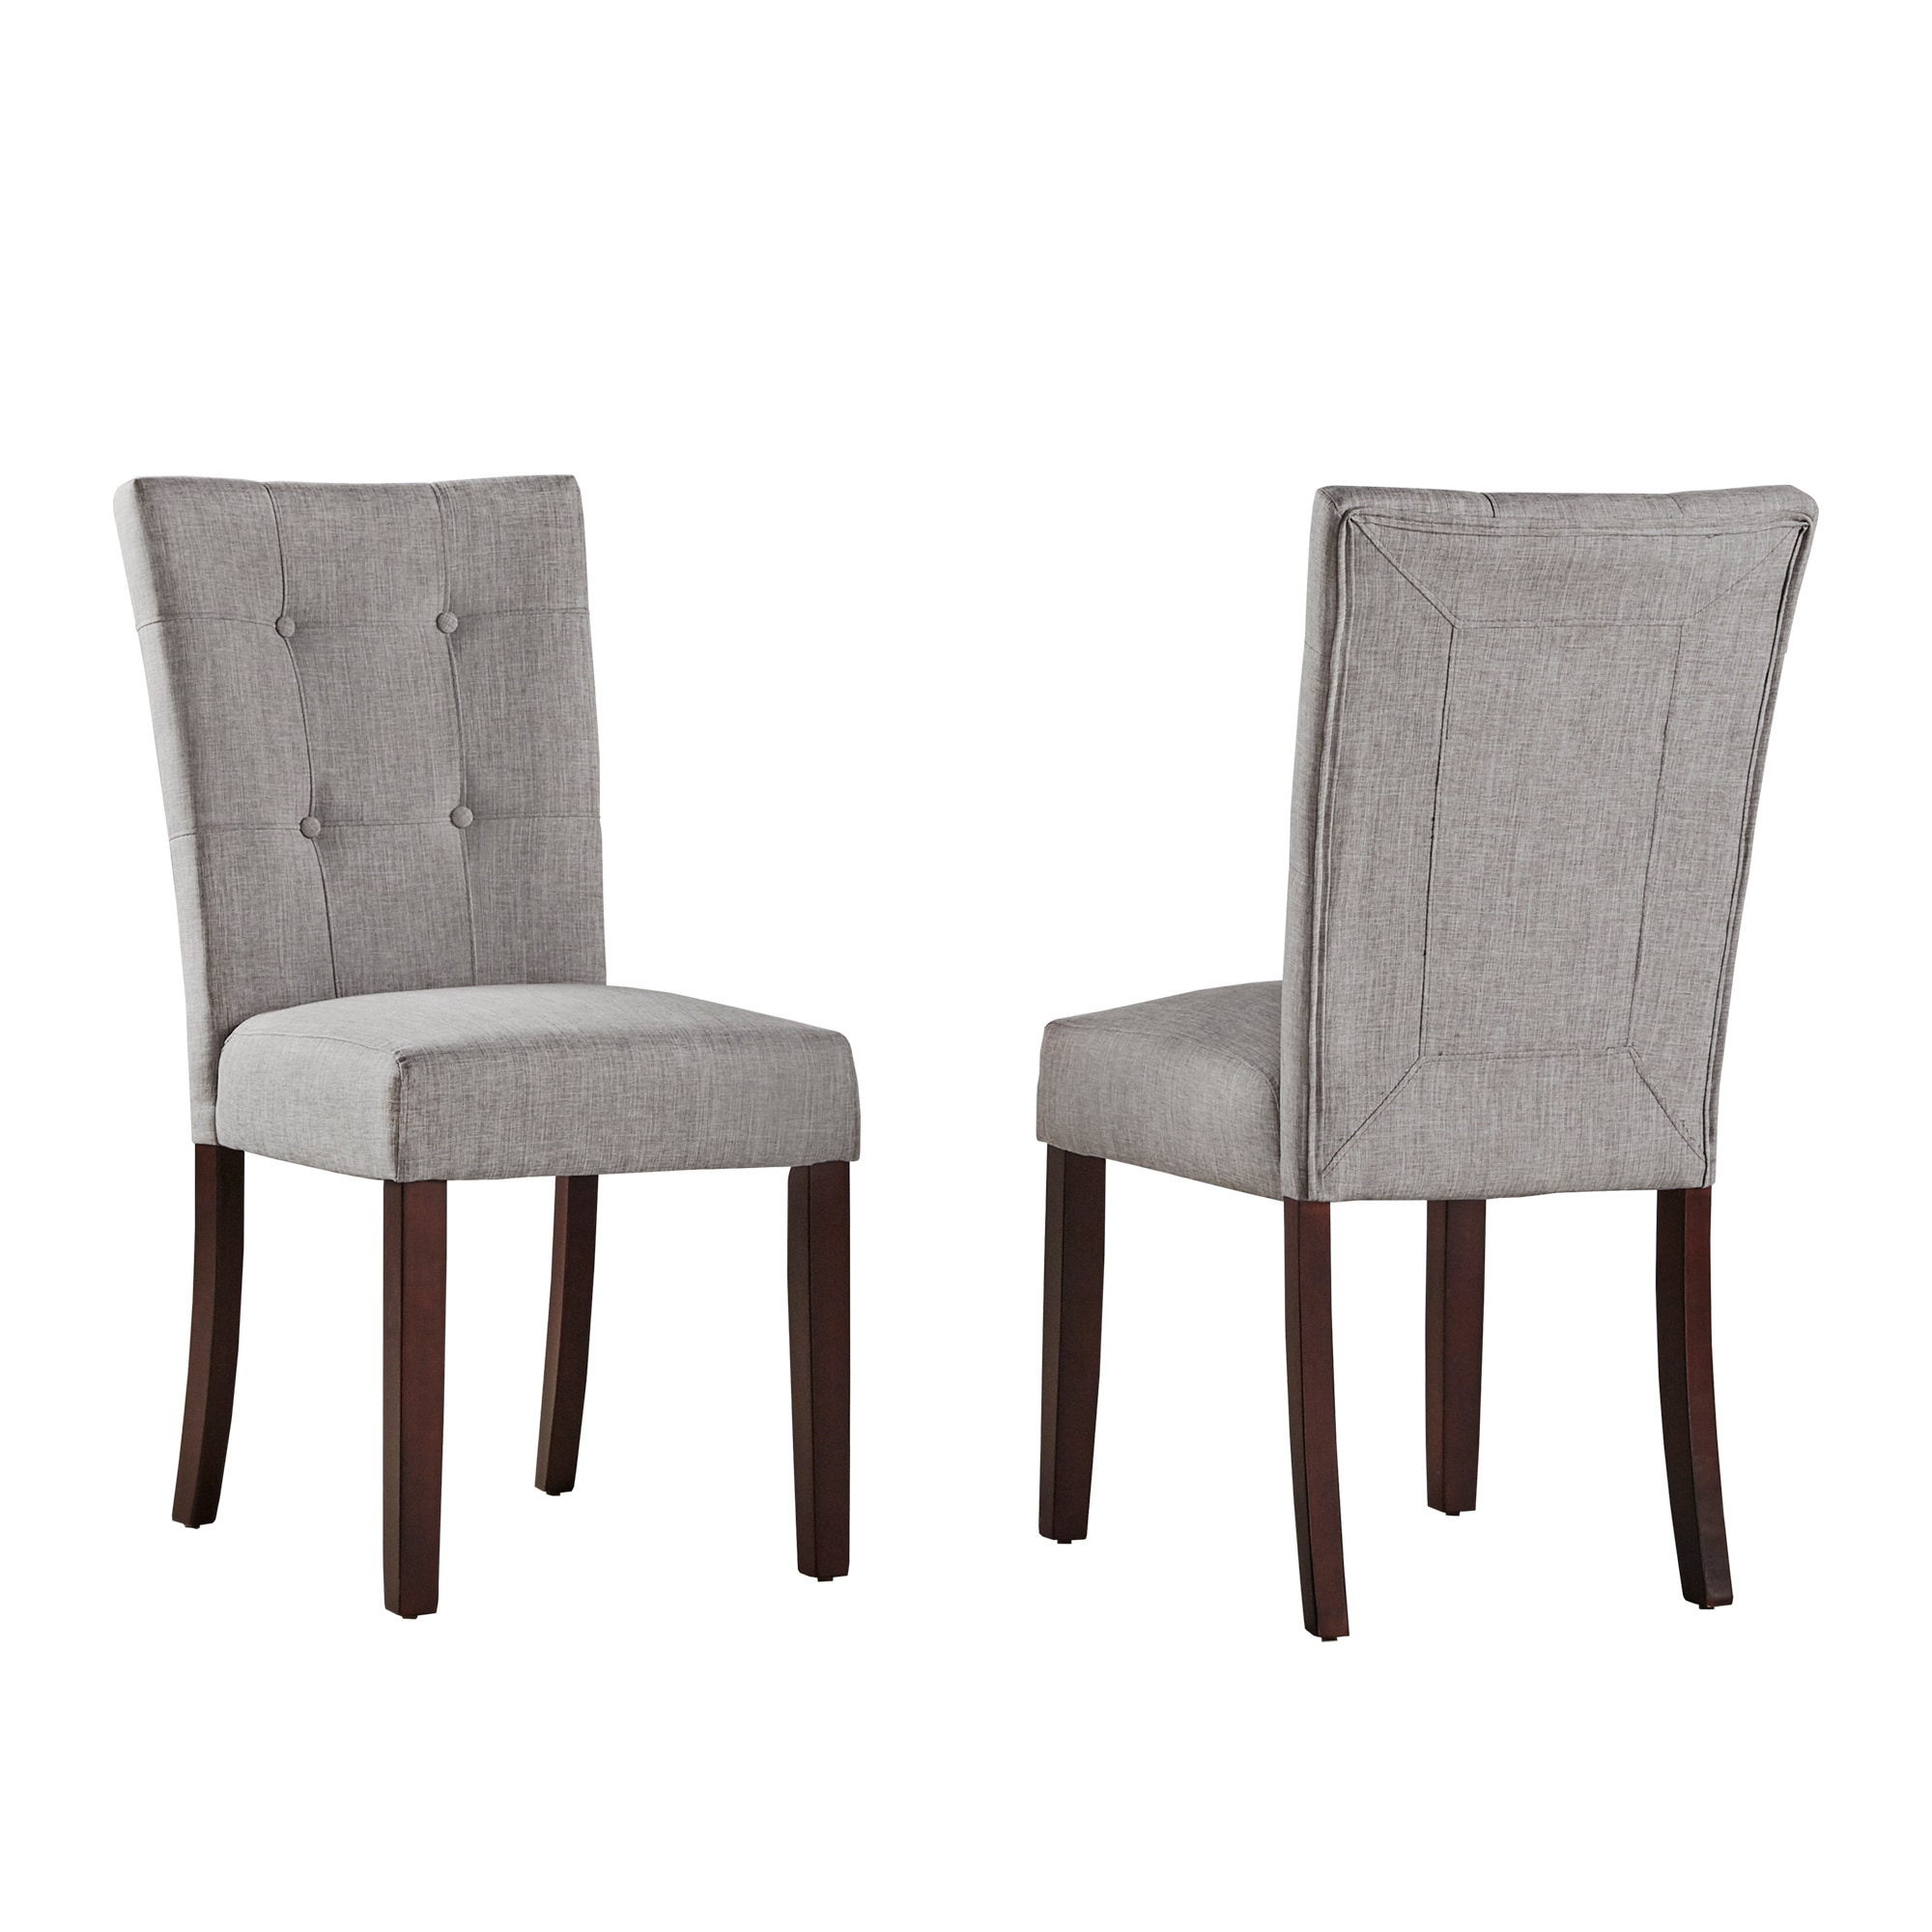 Hutton Upholstered Dining Chairs Set of 2